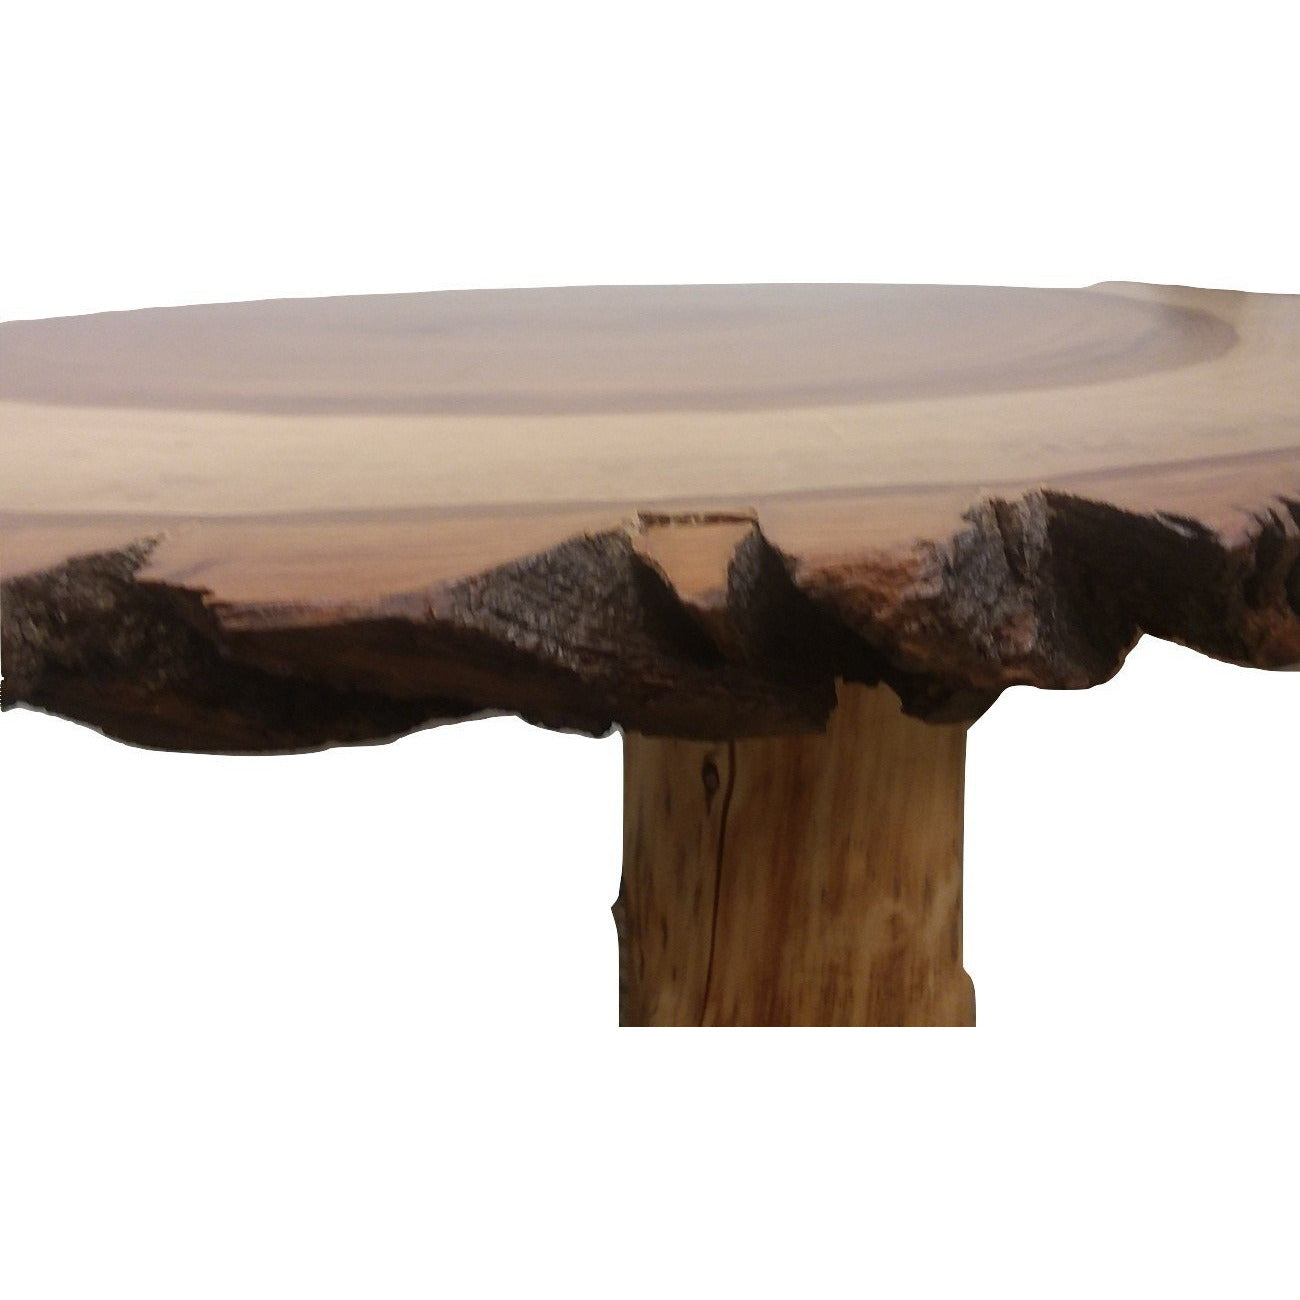 Newport Silver Maple Foyer Table (1251)